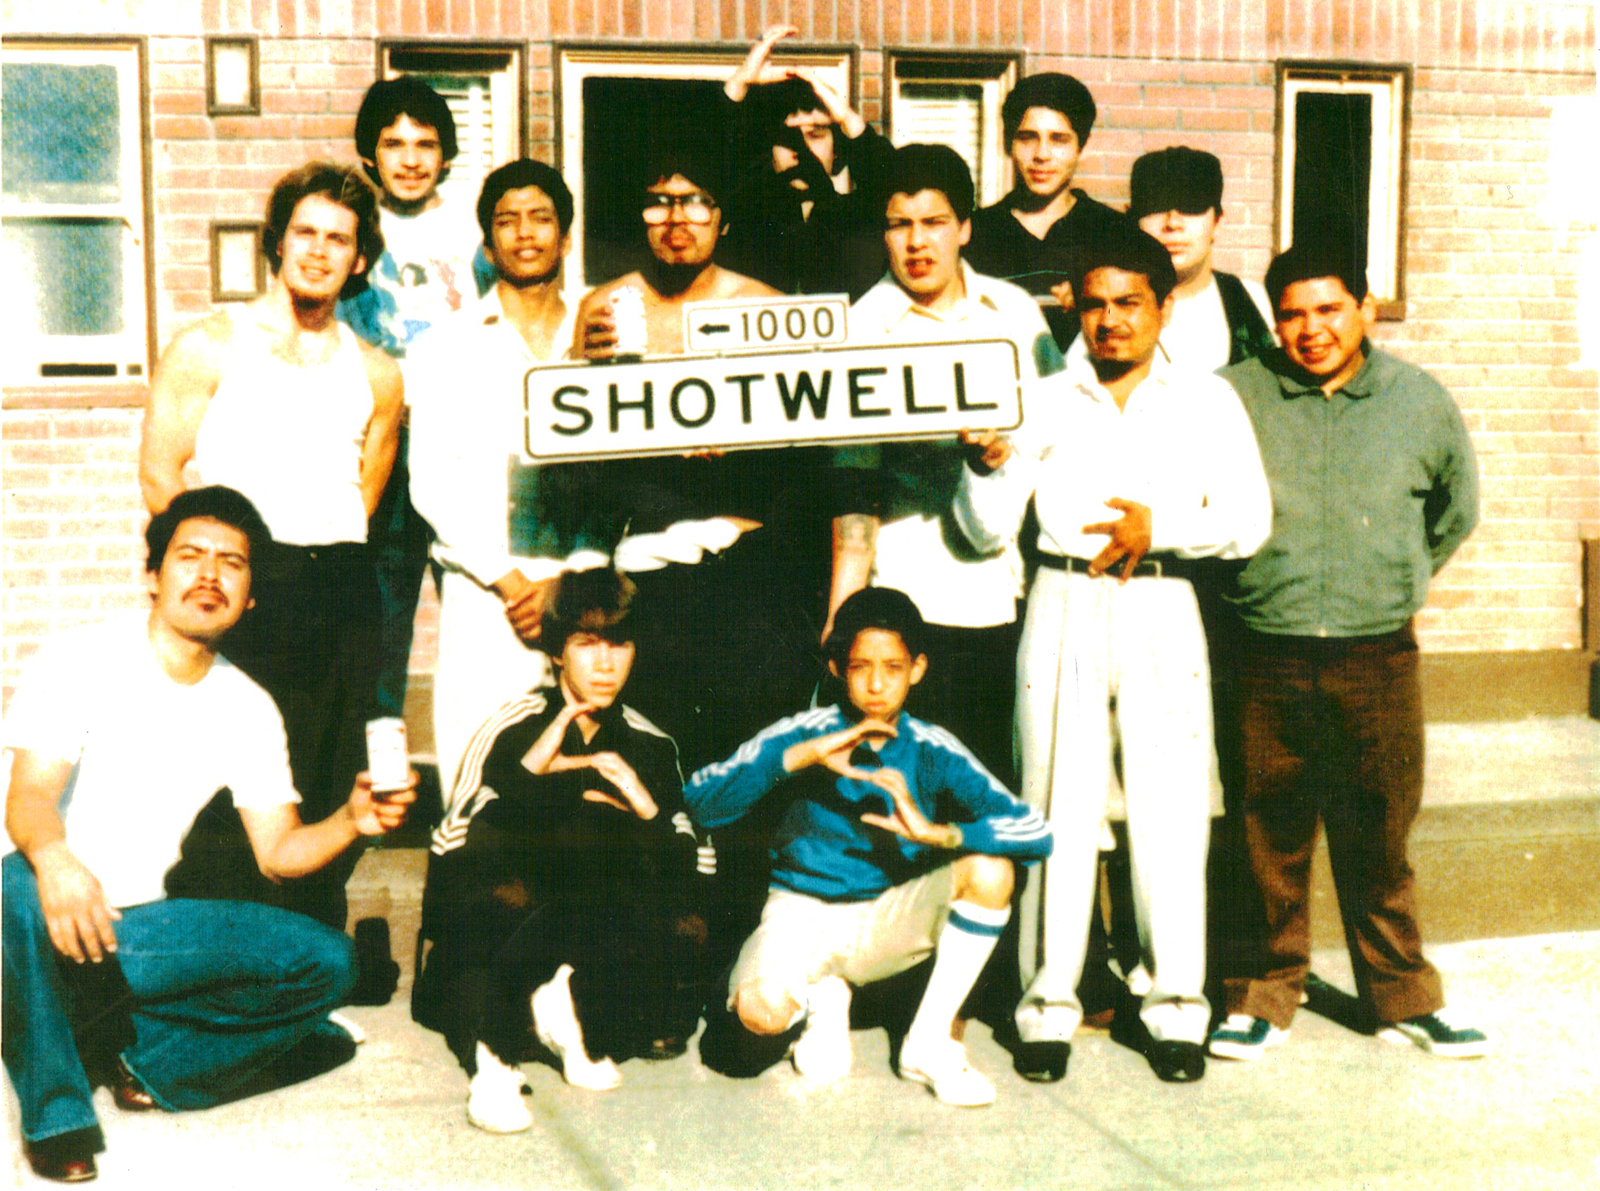 A Life and Death on Shotwell - Mission Local